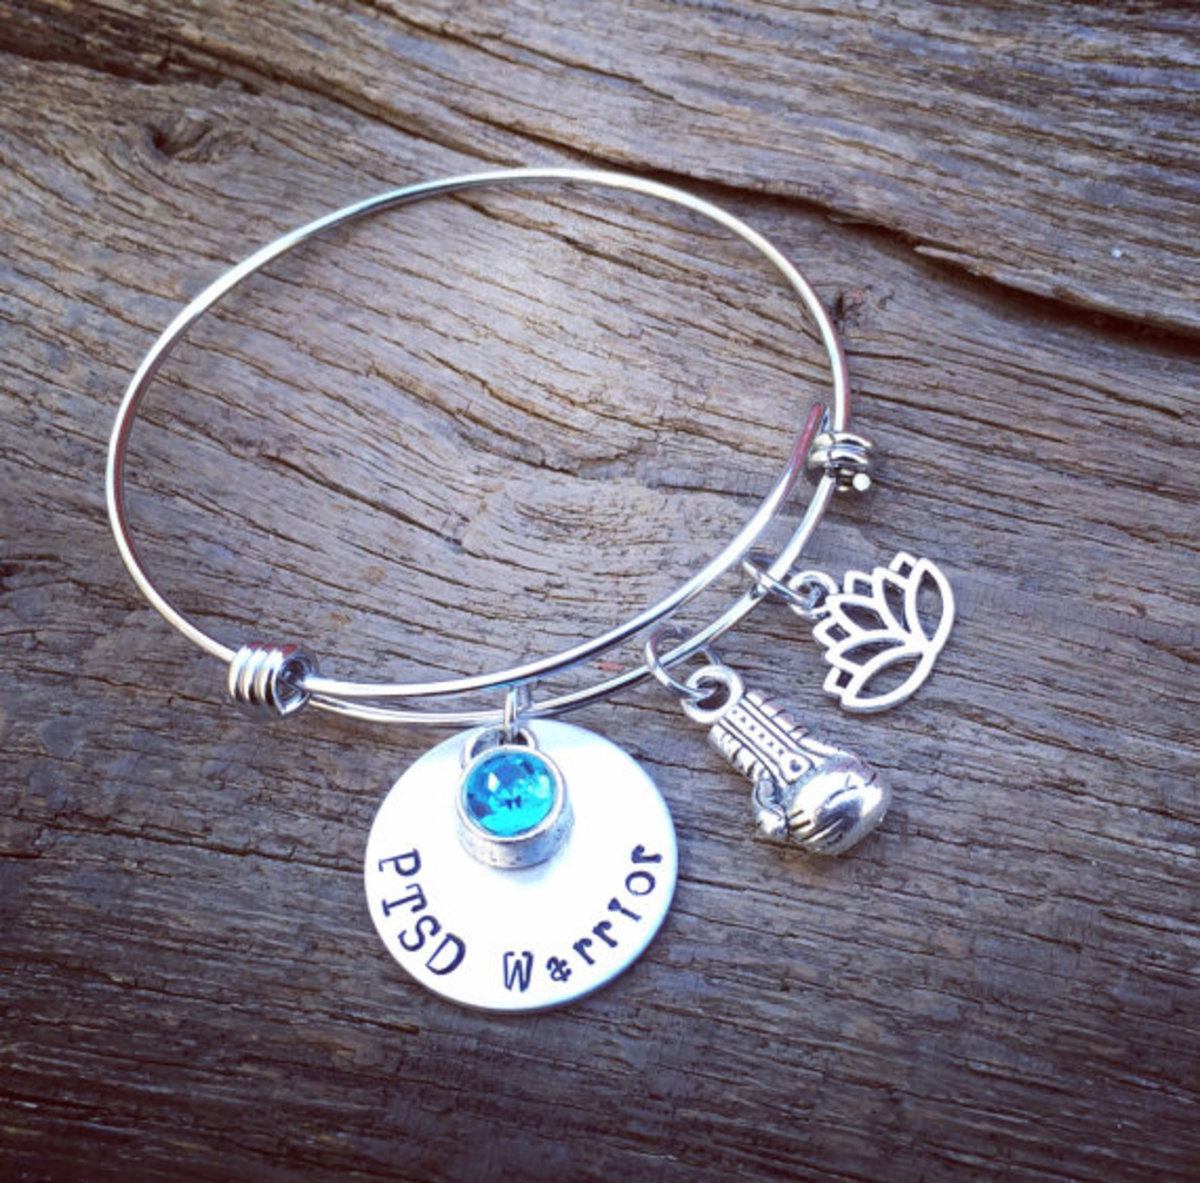 PTSD Warrior Bracelet